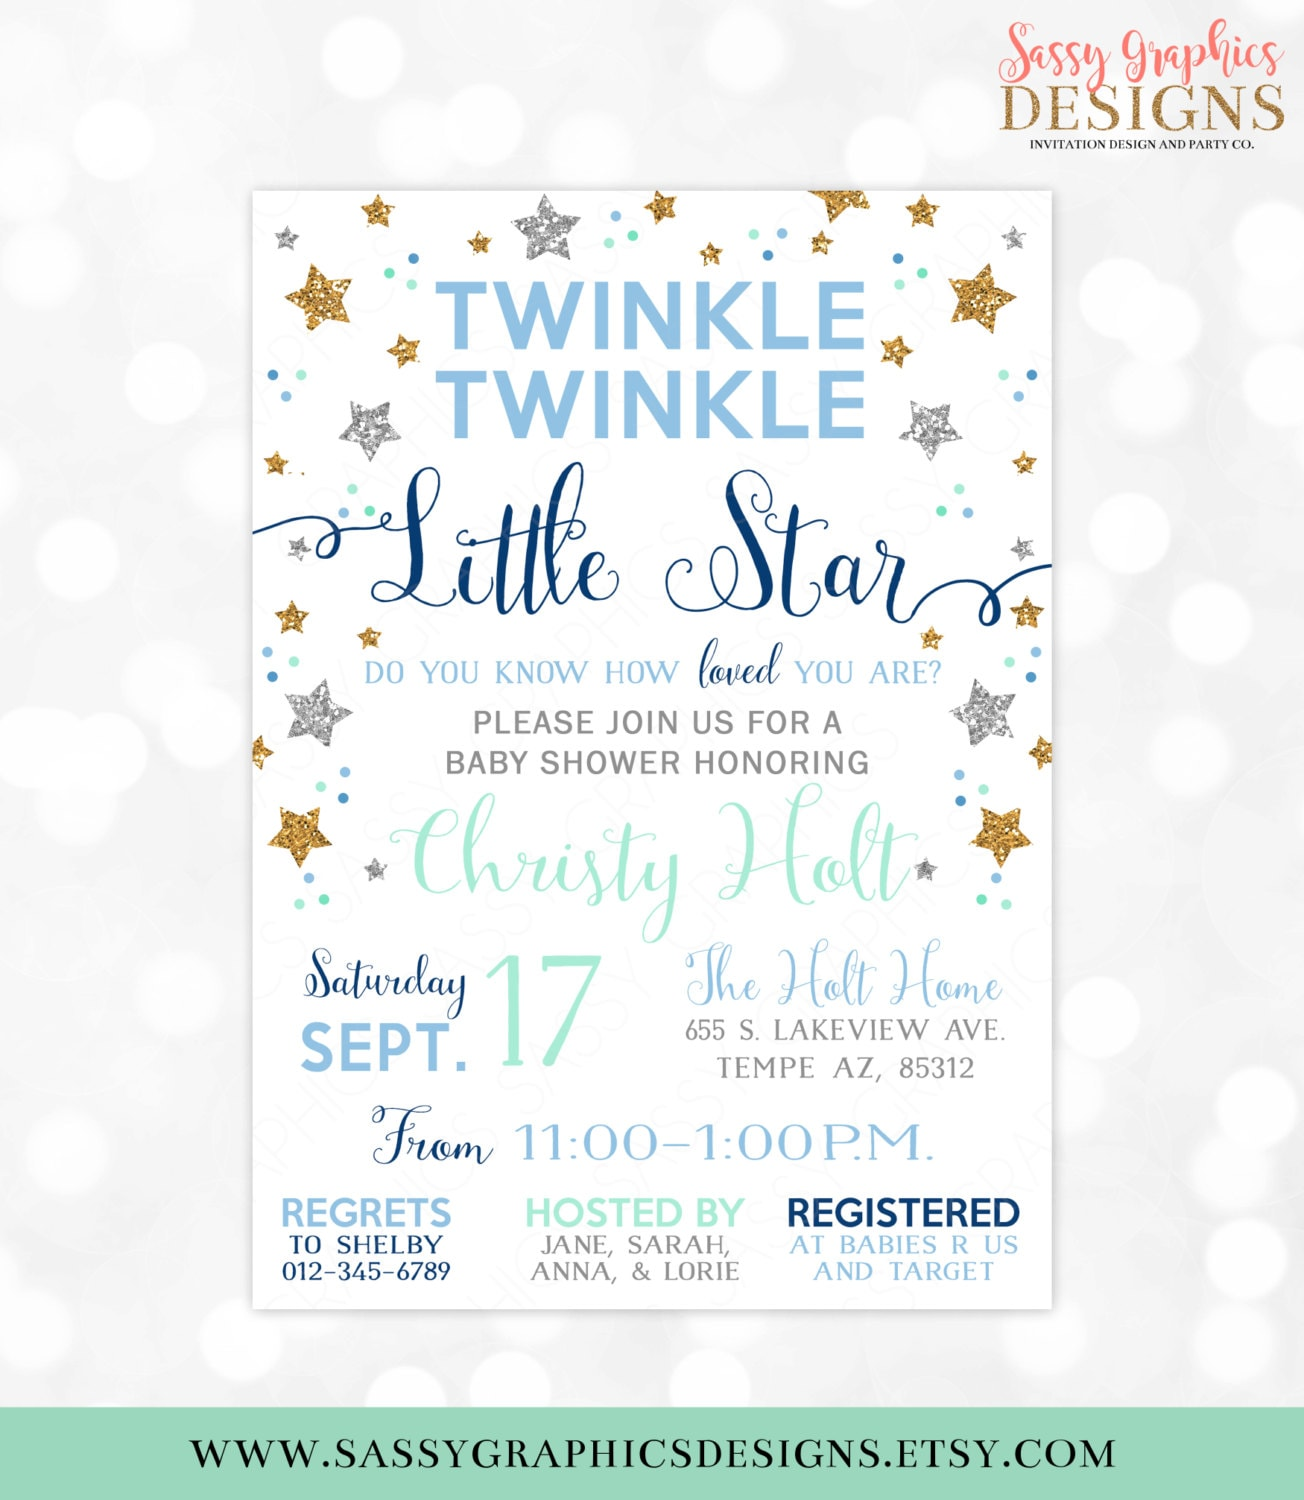 It's just a photo of Bewitching Free Printable Twinkle Twinkle Little Star Baby Shower Invitations